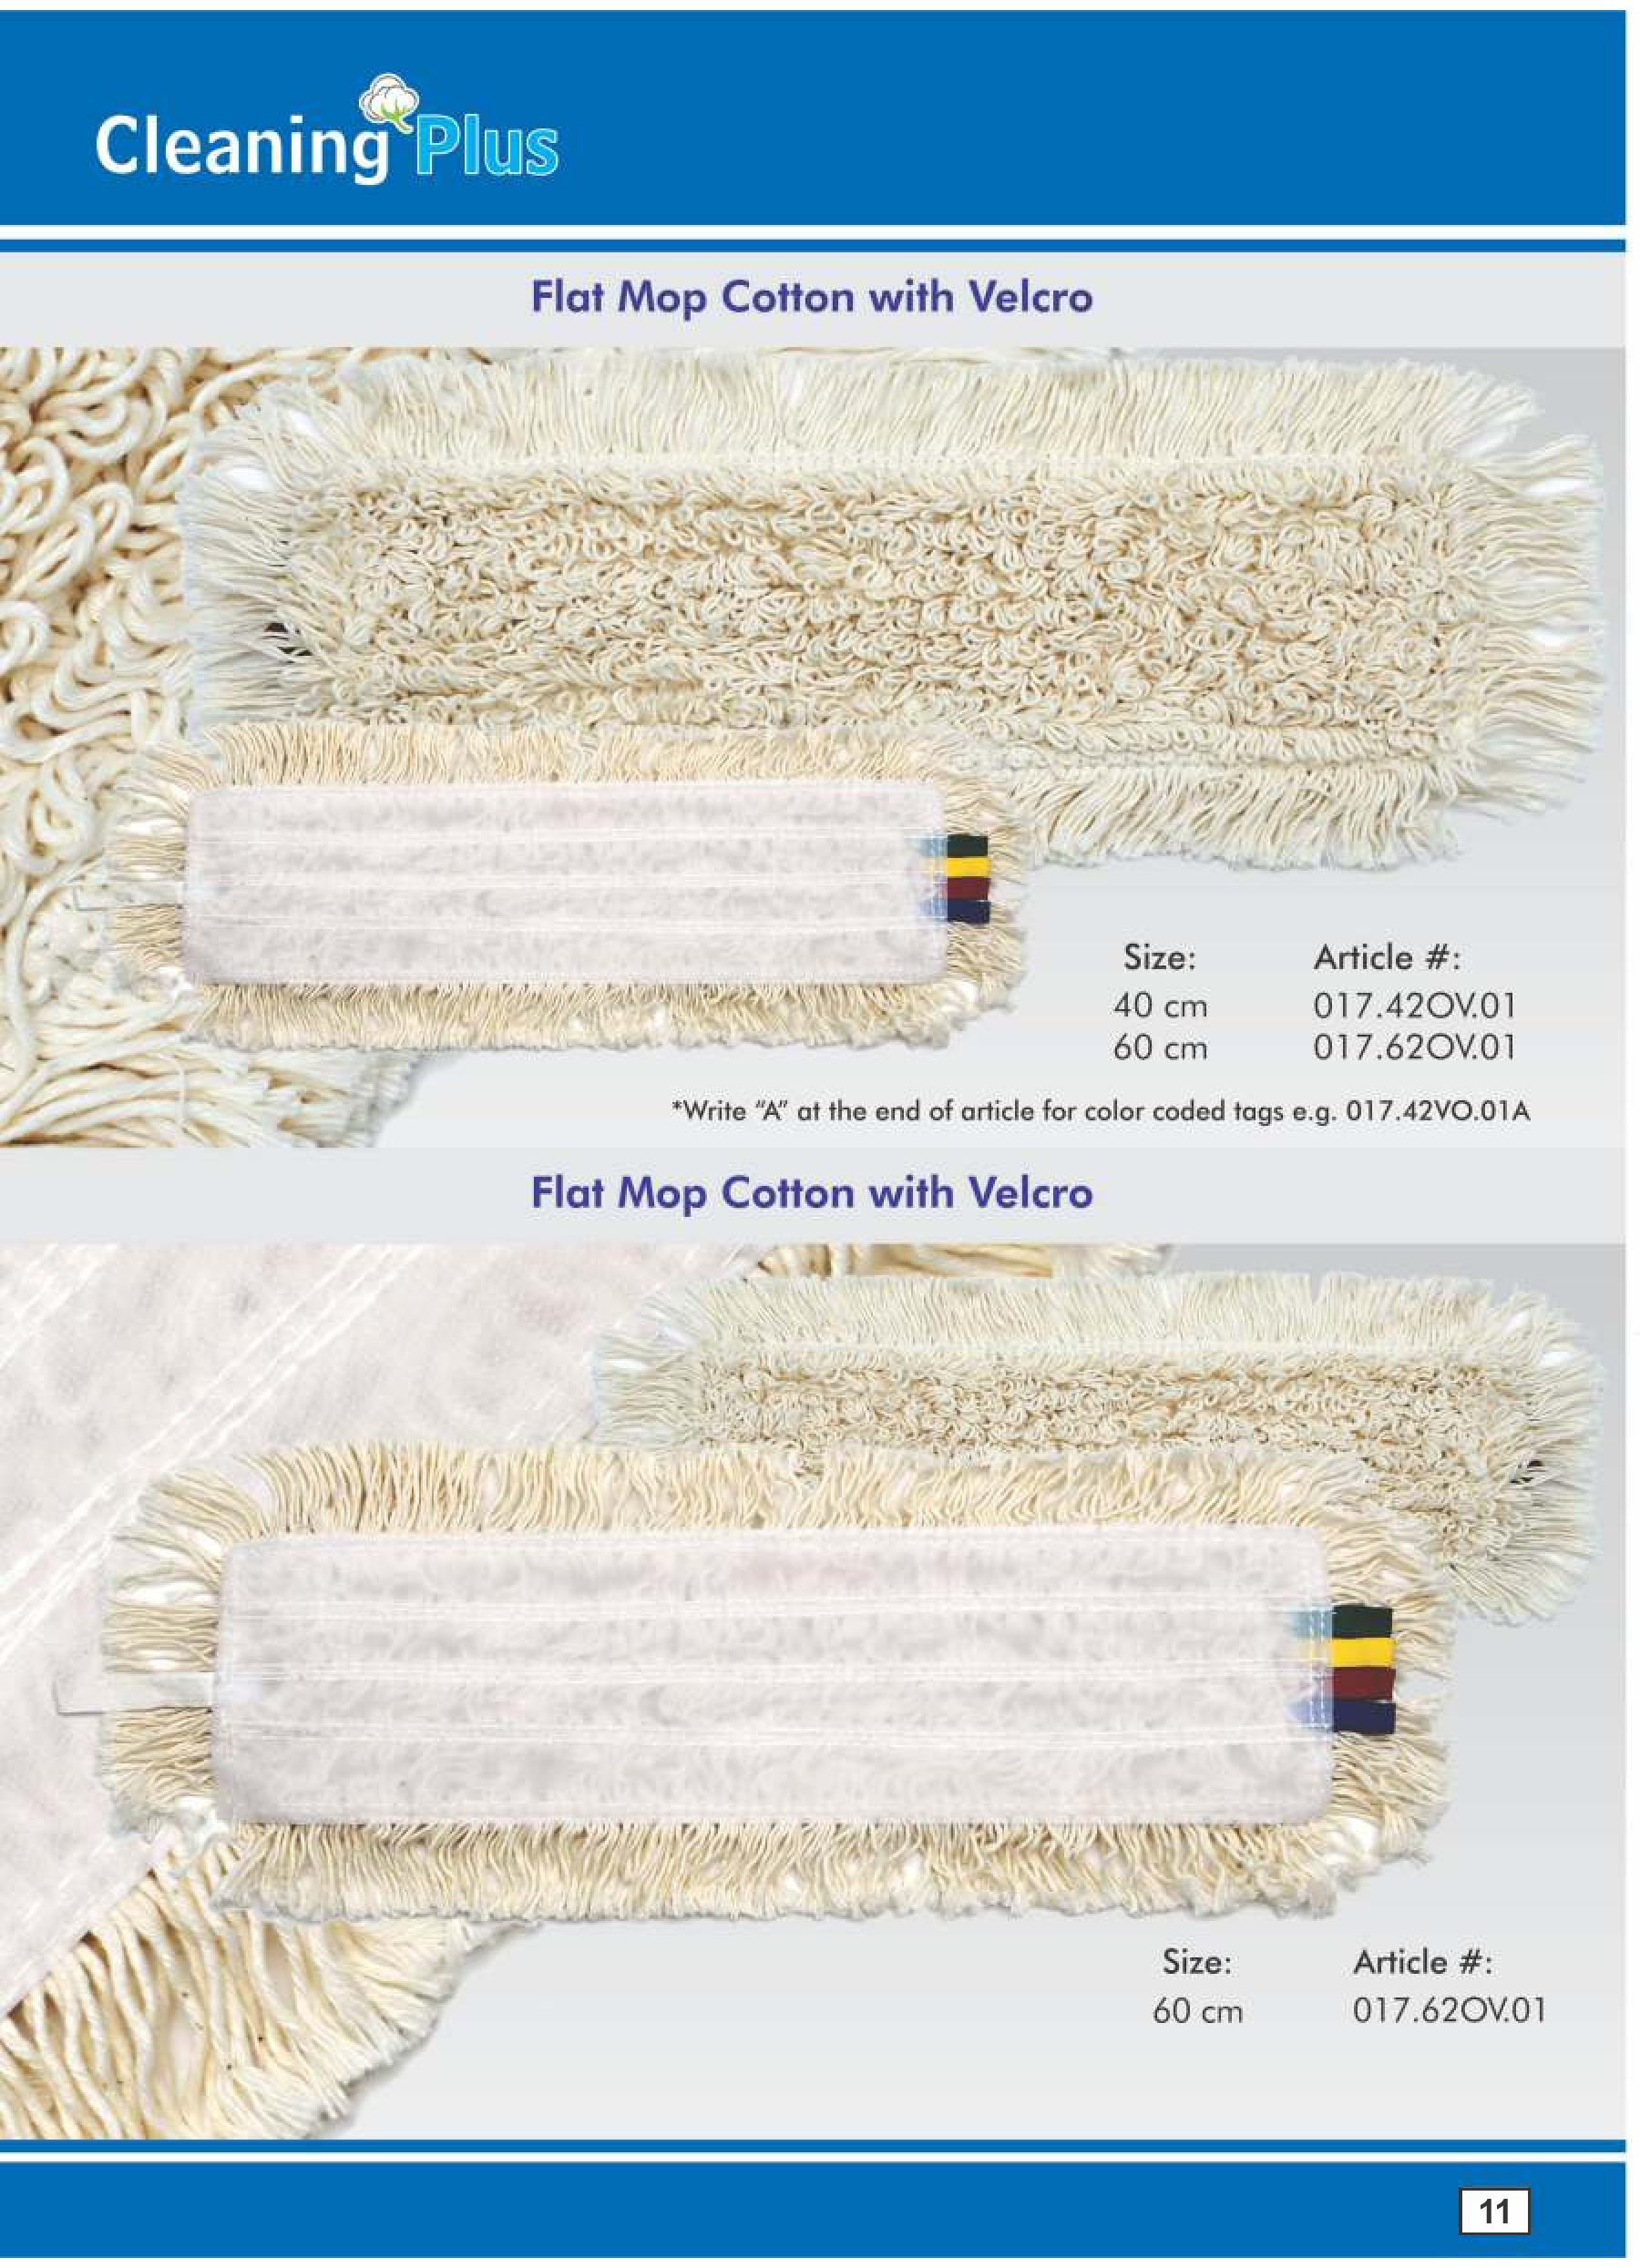 Flat mops cotton with Velcro